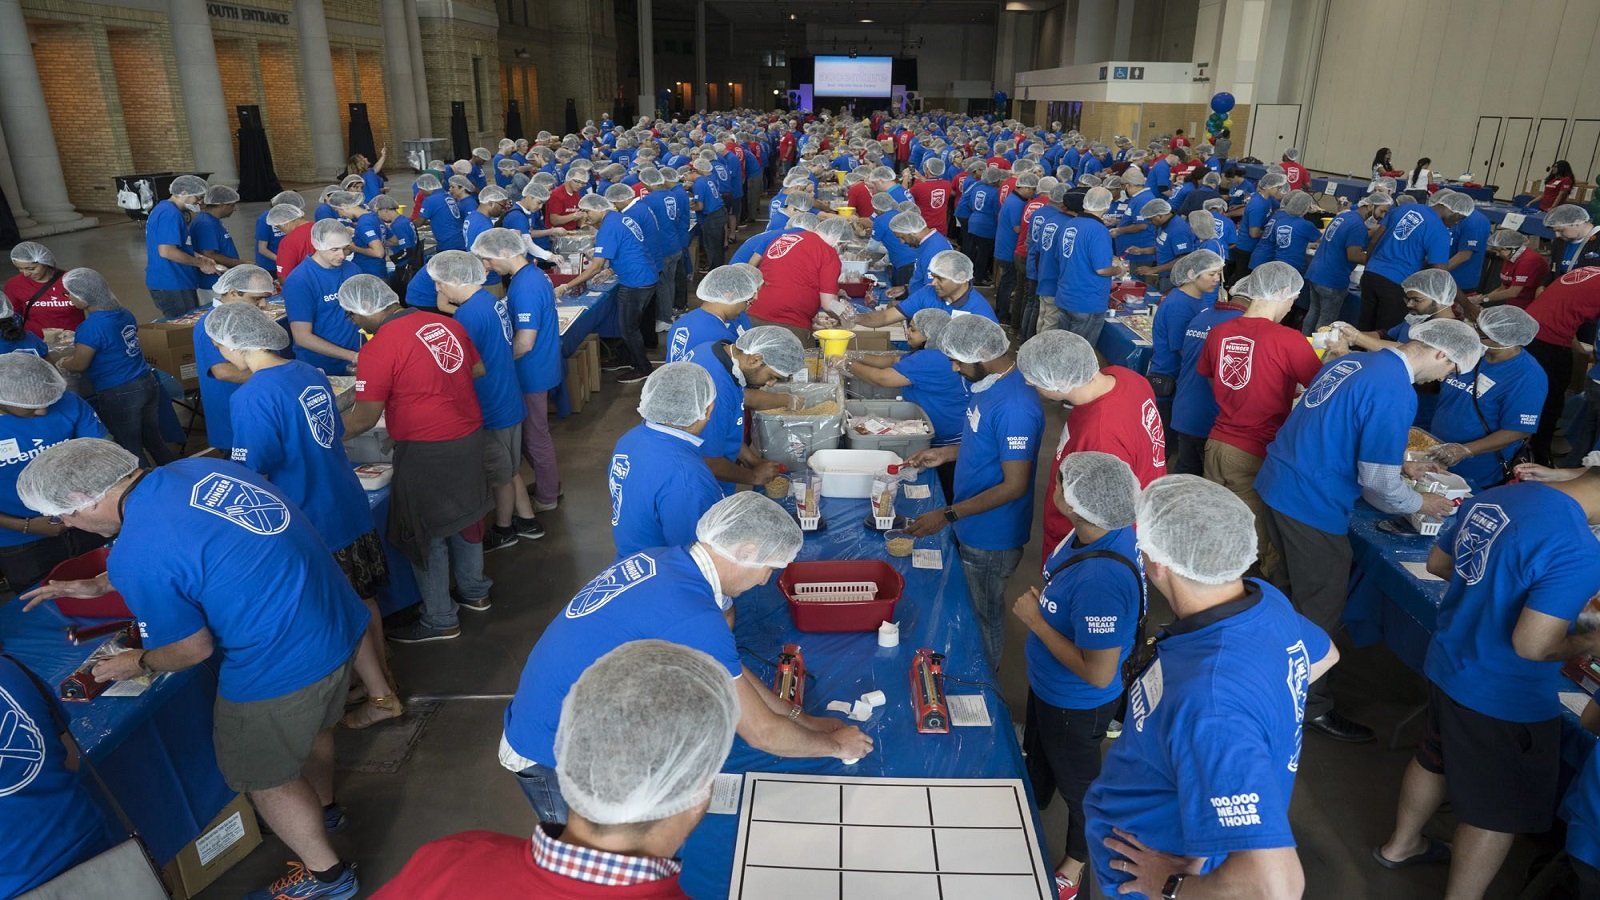 Accenture employees to pack and donate 100,000 meals to toronto's daily bread food bank